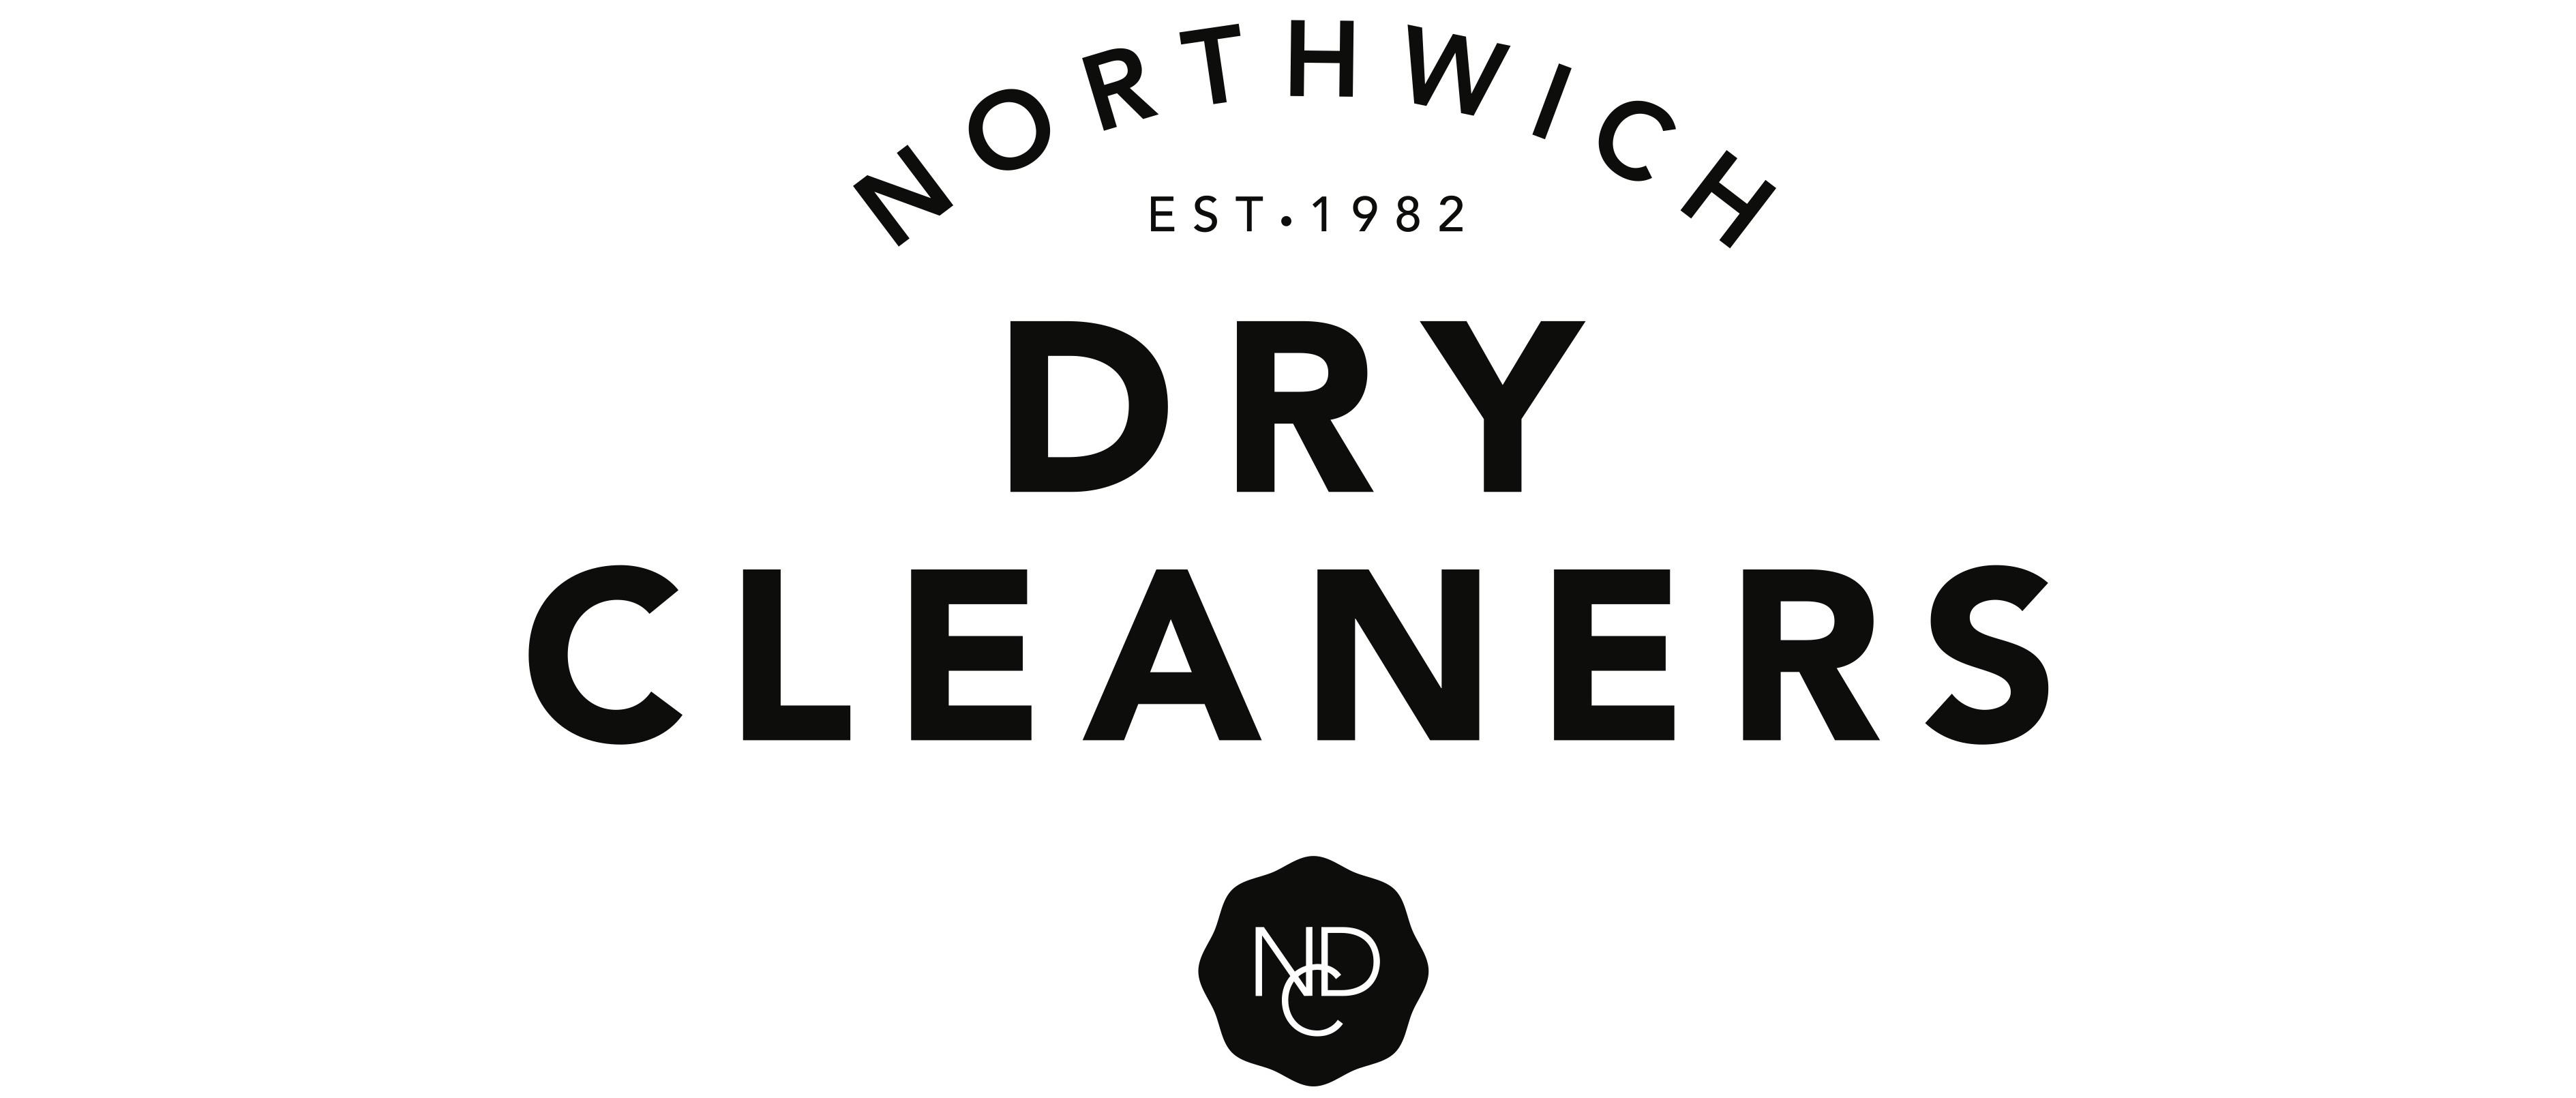 Northwich Dry Cleaners